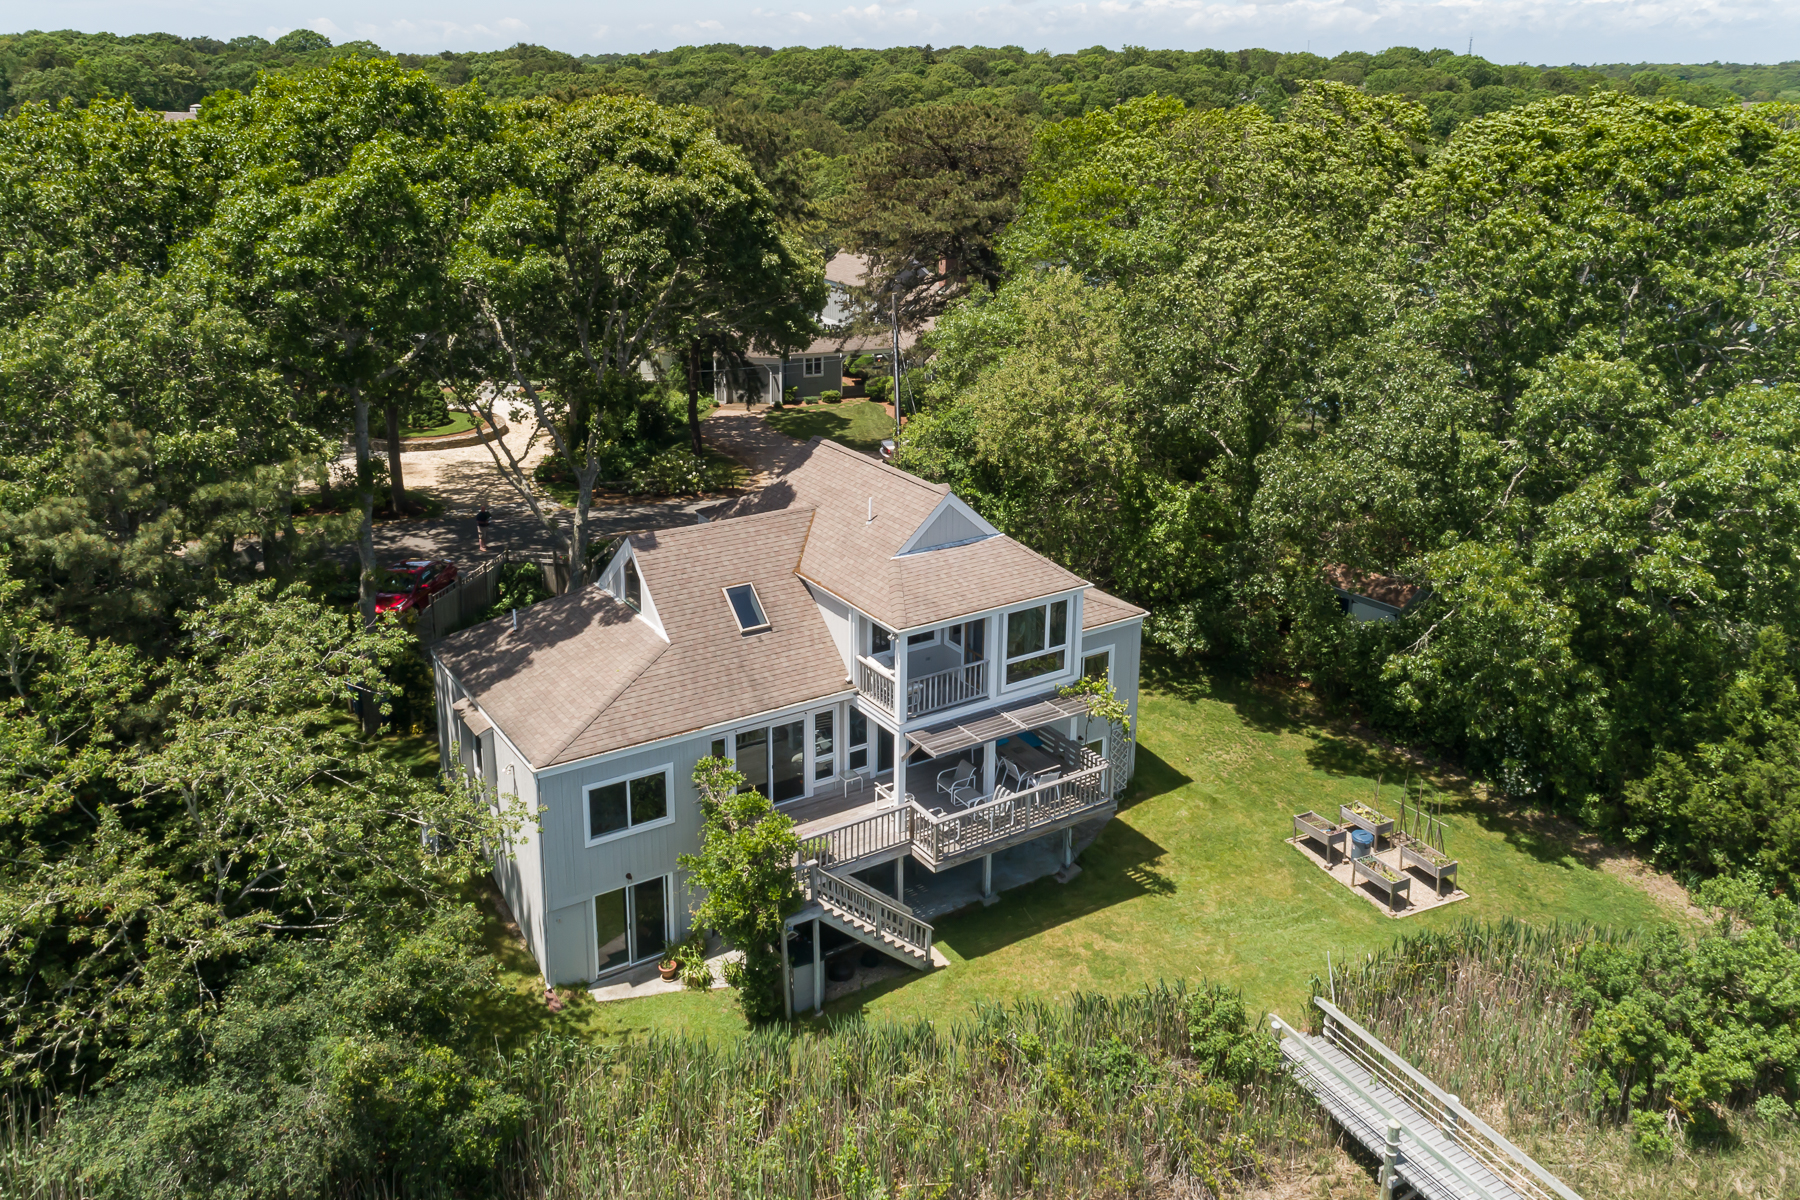 Single Family Homes for Active at ADORABLE HOME ON POPPONESSET CREEK 17 Bowsprit New Seabury, Massachusetts 02649 United States